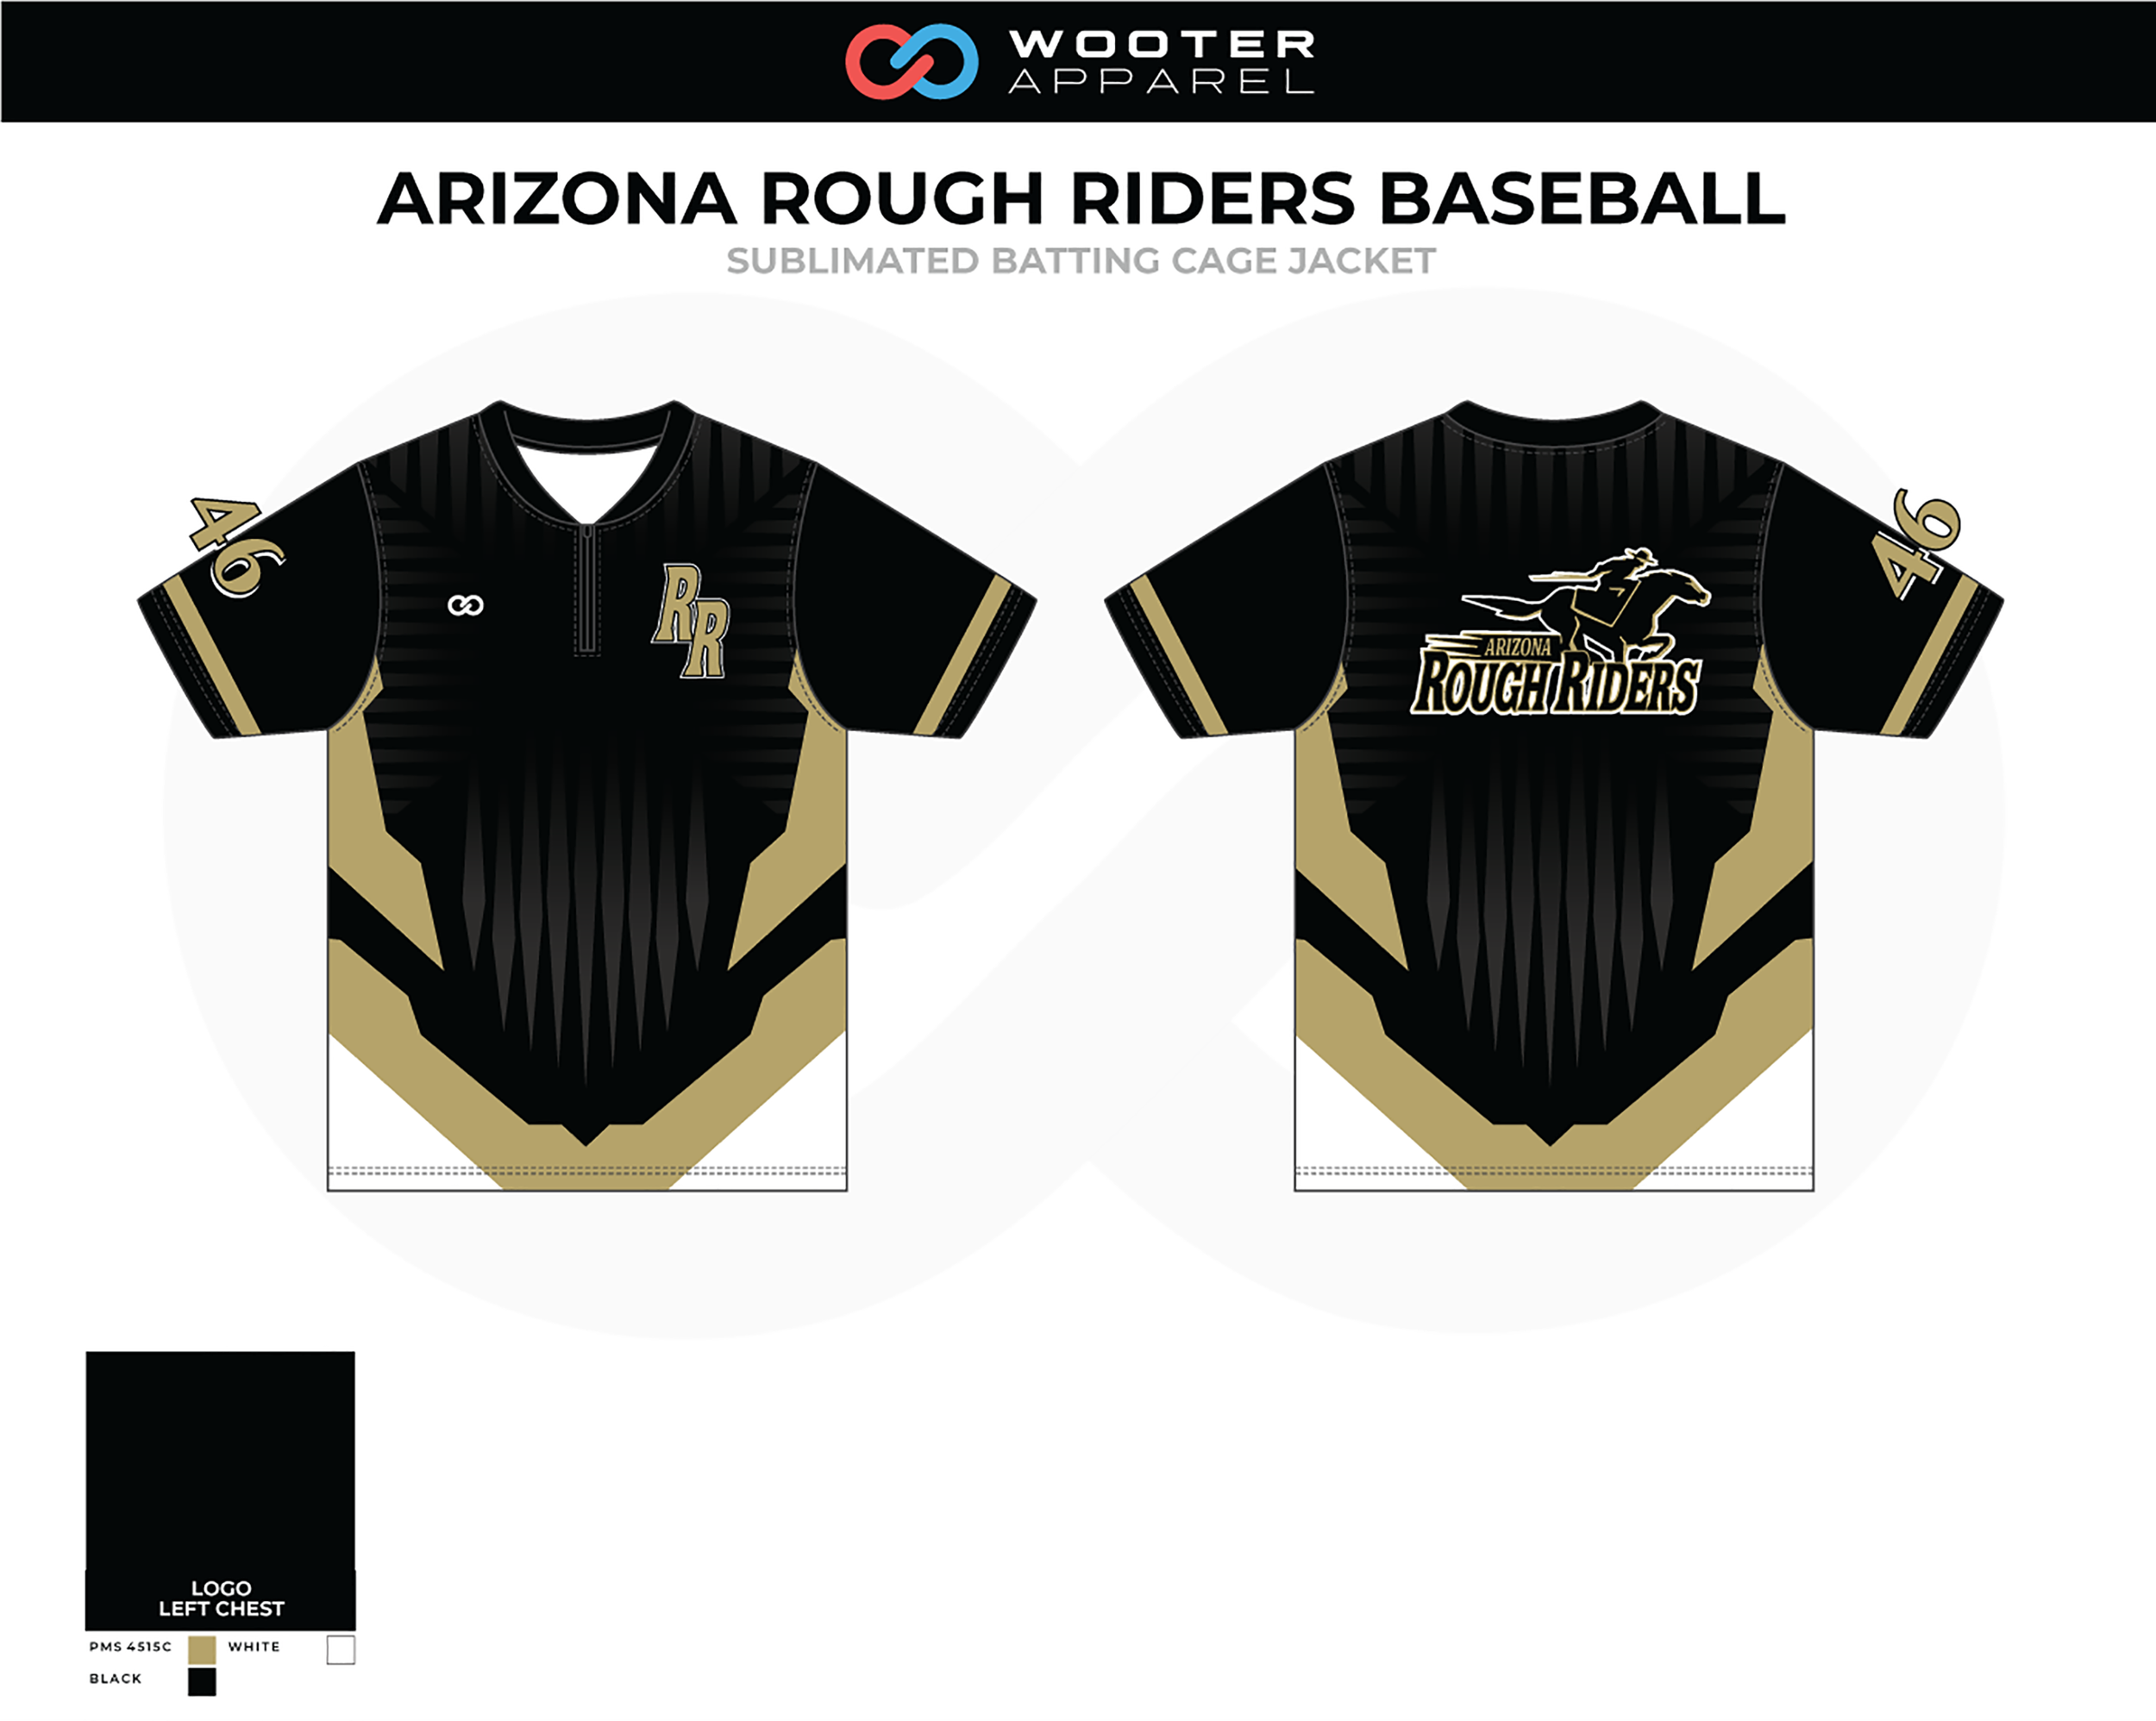 ArizonaRoughRidersBaseball_CageJacketMockupV2.png